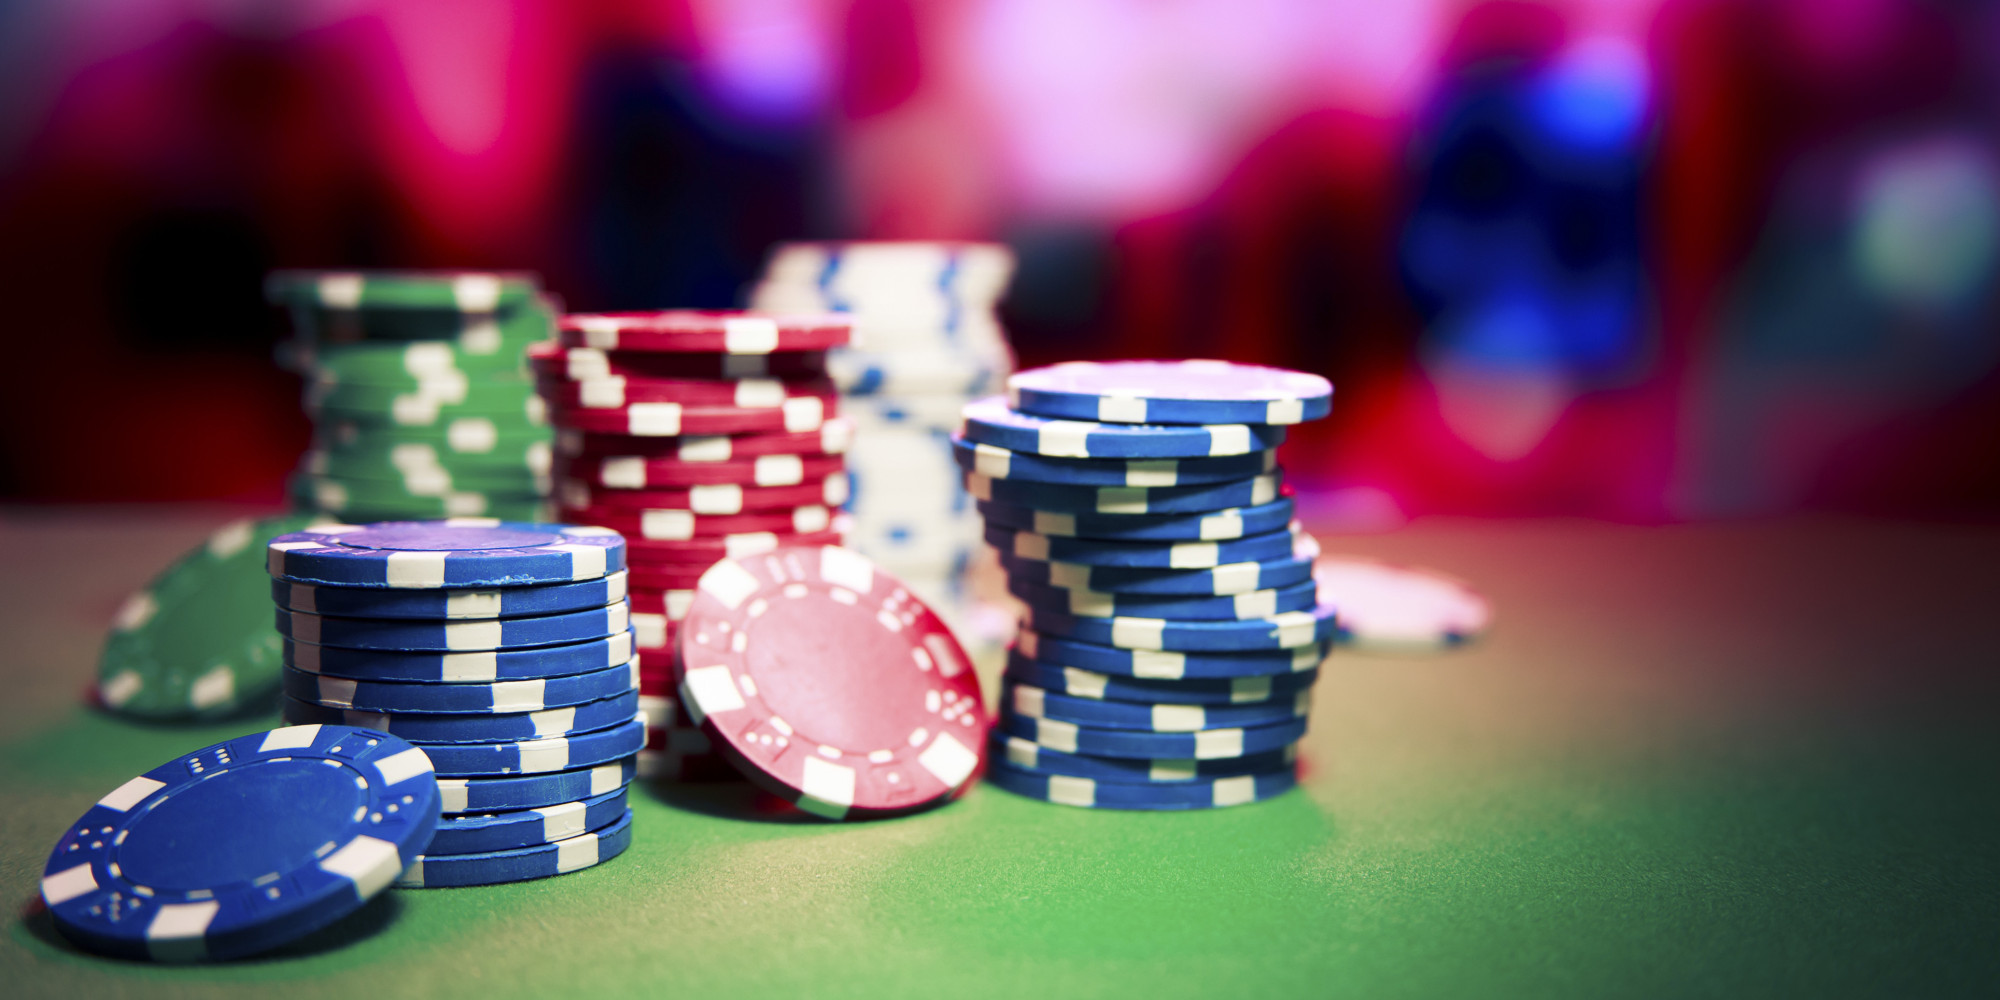 Casino beginners guide problem gambling chat rooms